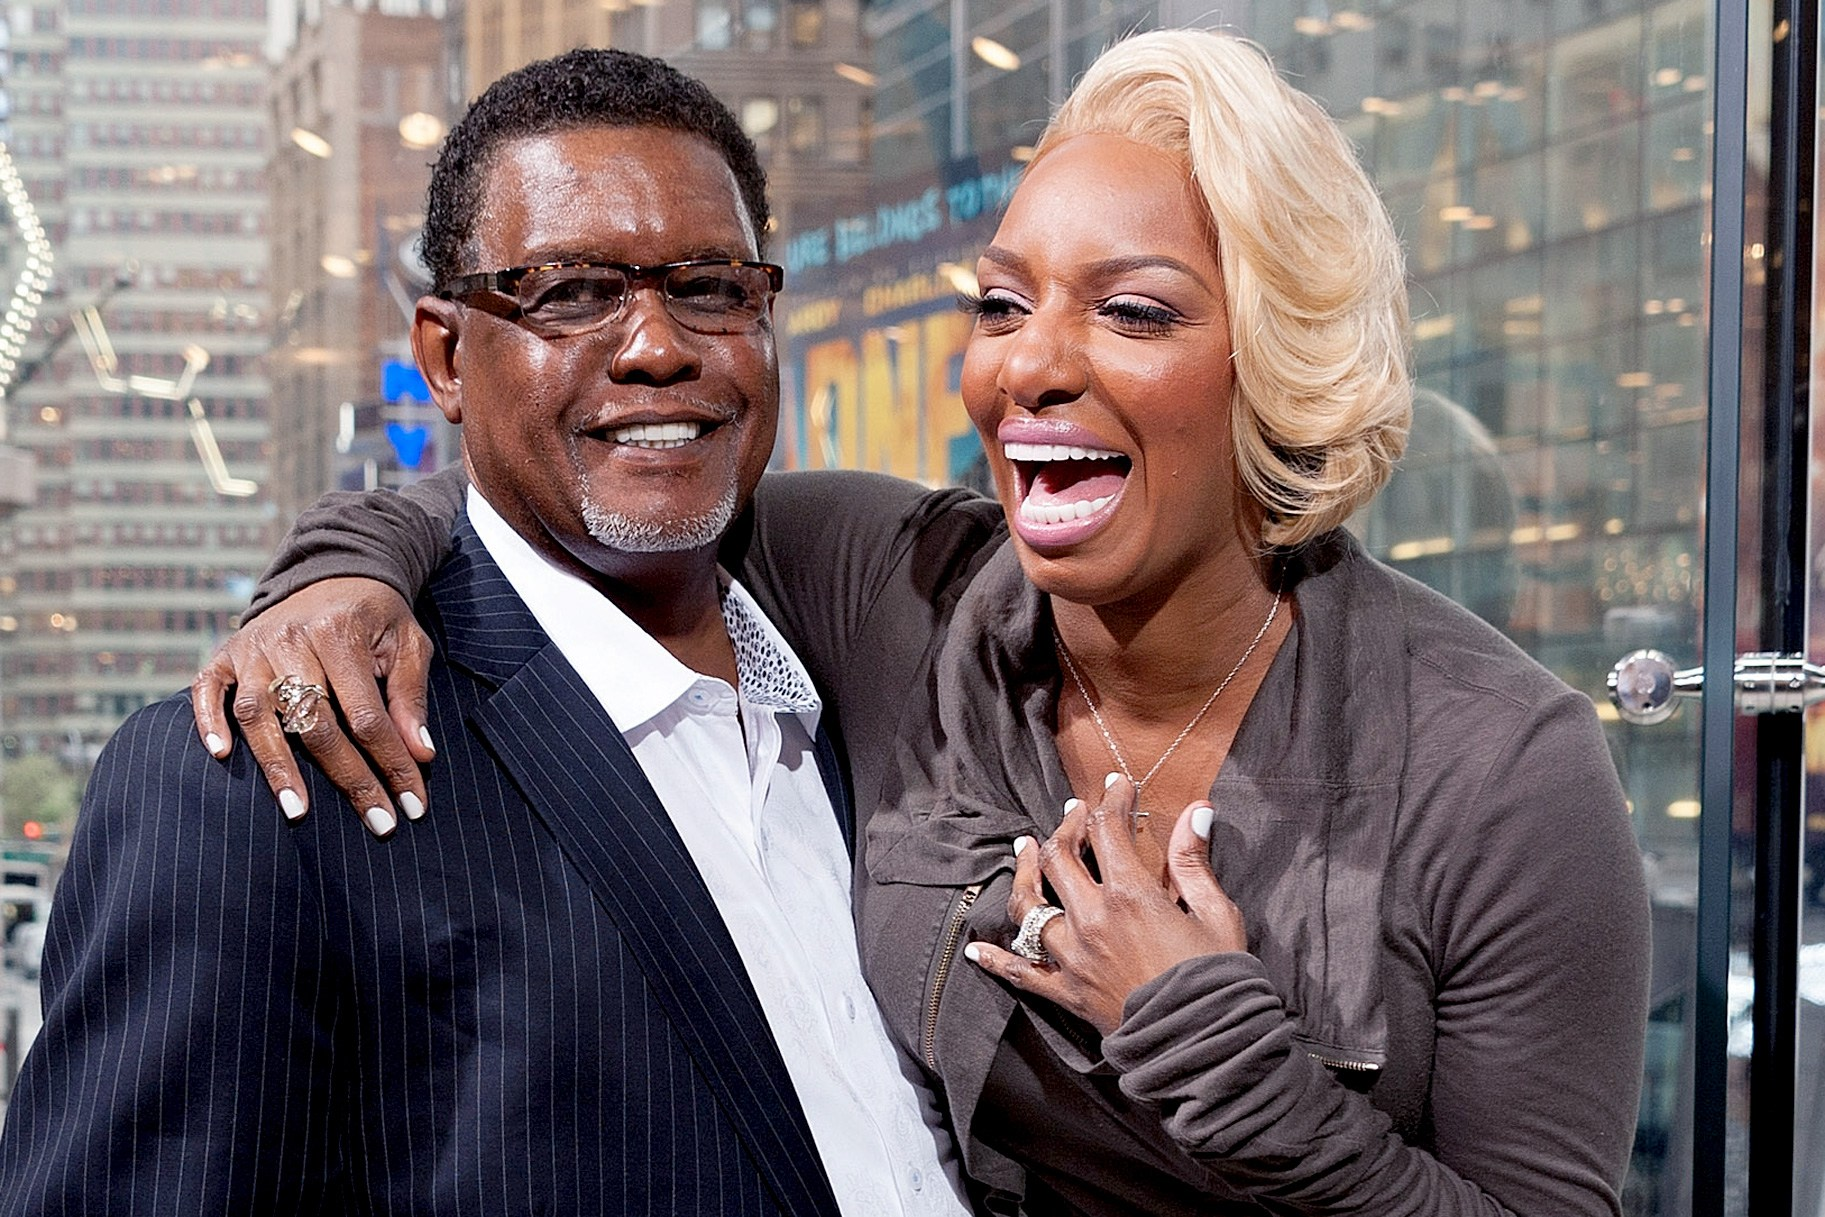 NeNe Leakes Makes Her Fans Happy With The Latest Pics With Gregg Leakes - People Love To See Them Together And Gregg Doing Better After The Battle With Cancer